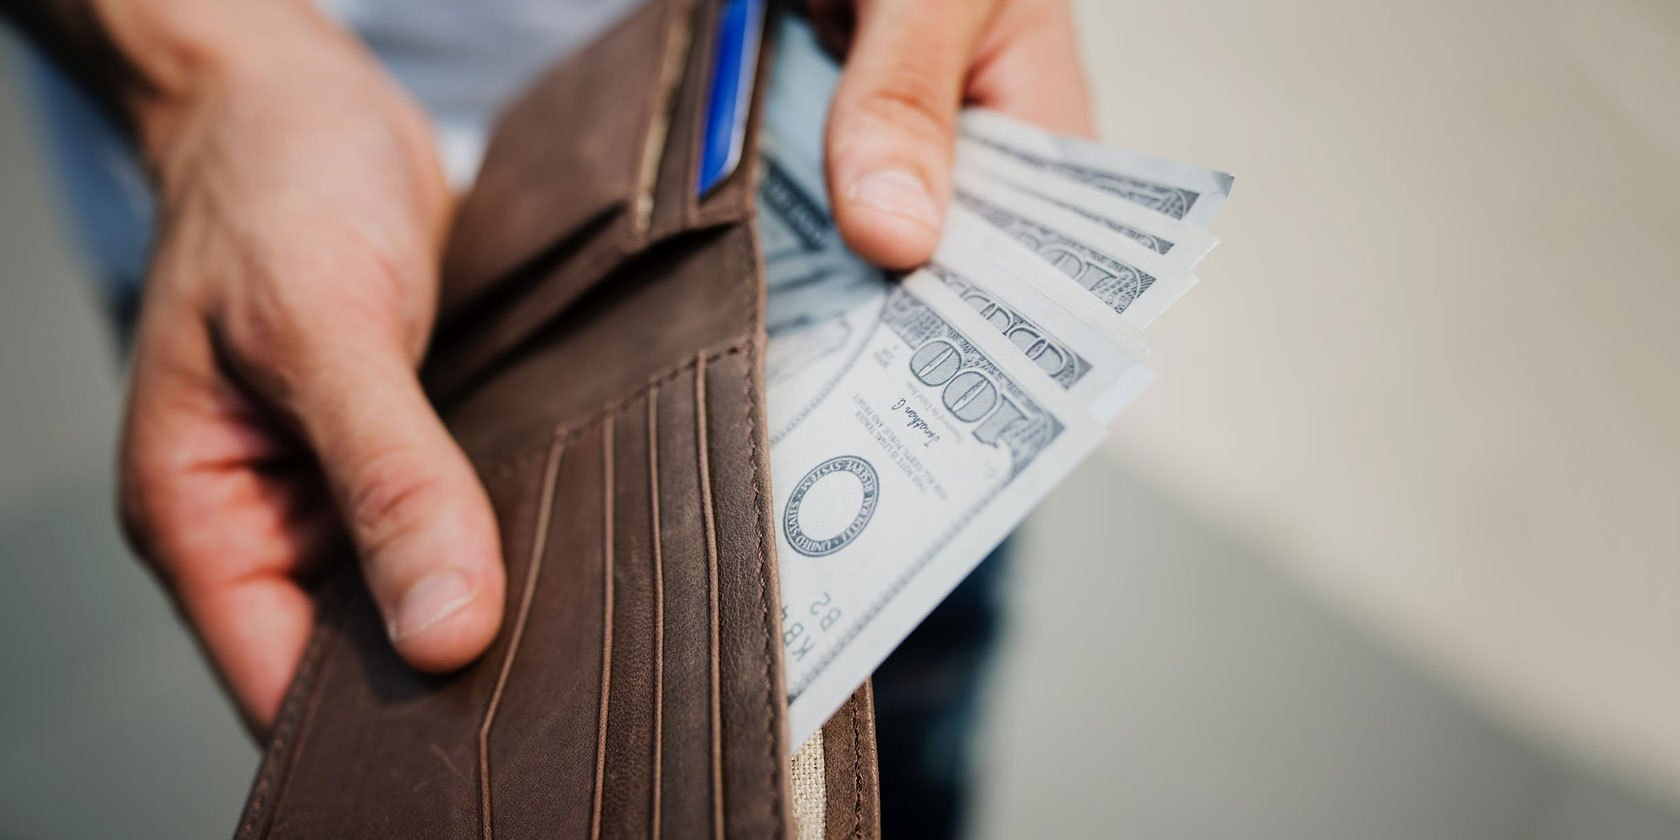 5 Simple Ways to Set a Budget and Avoid Overspending